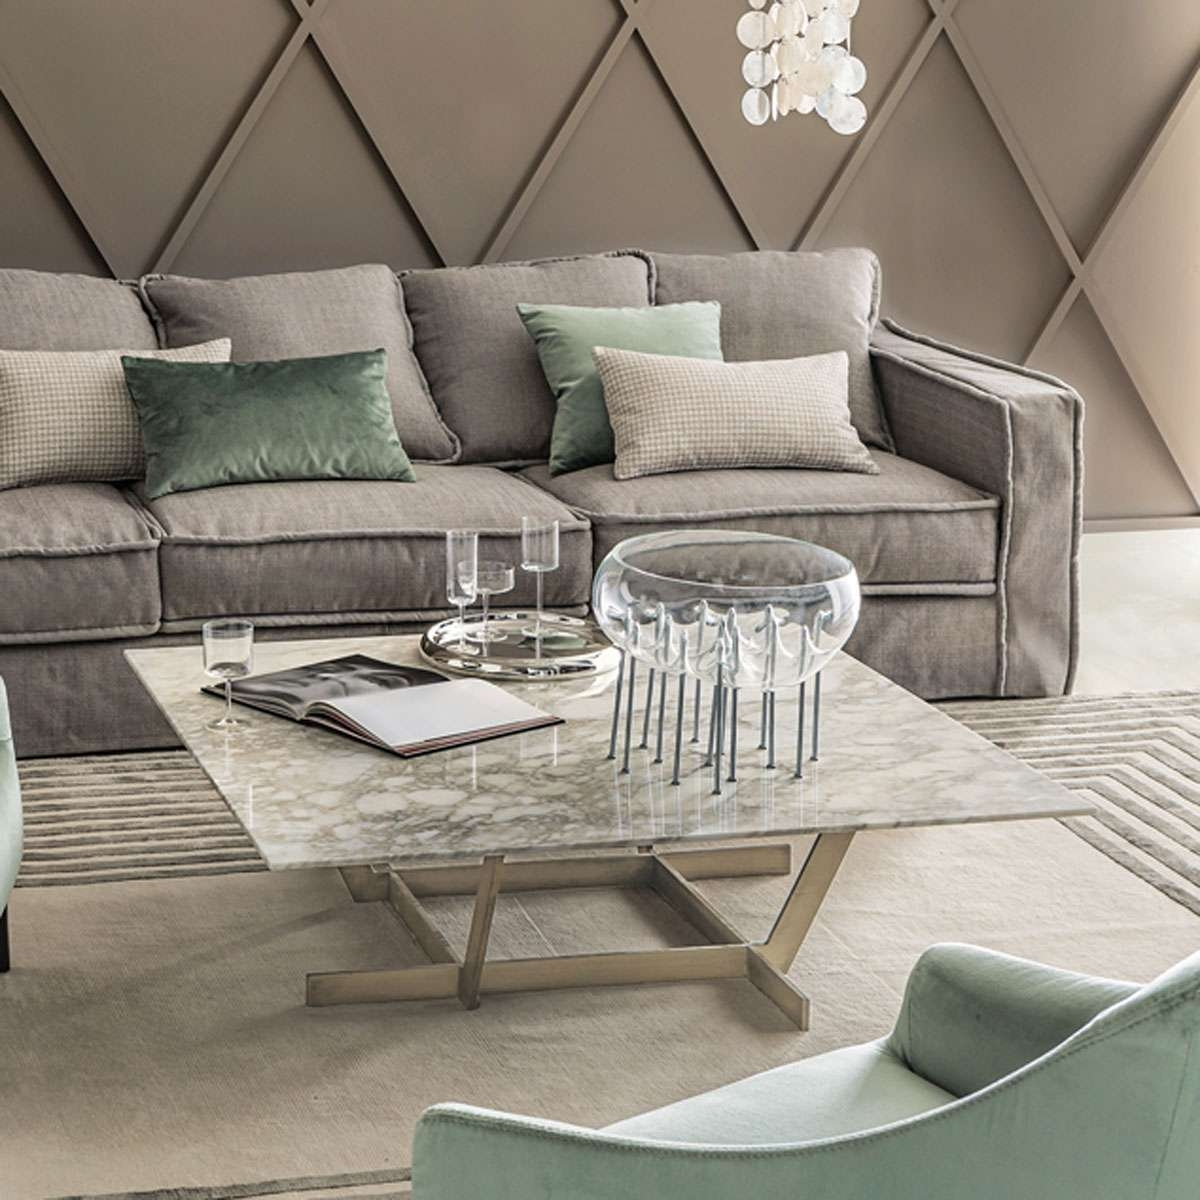 News – Ten Luxury Coffee Tables To Fall In Love With (View 11 of 20)